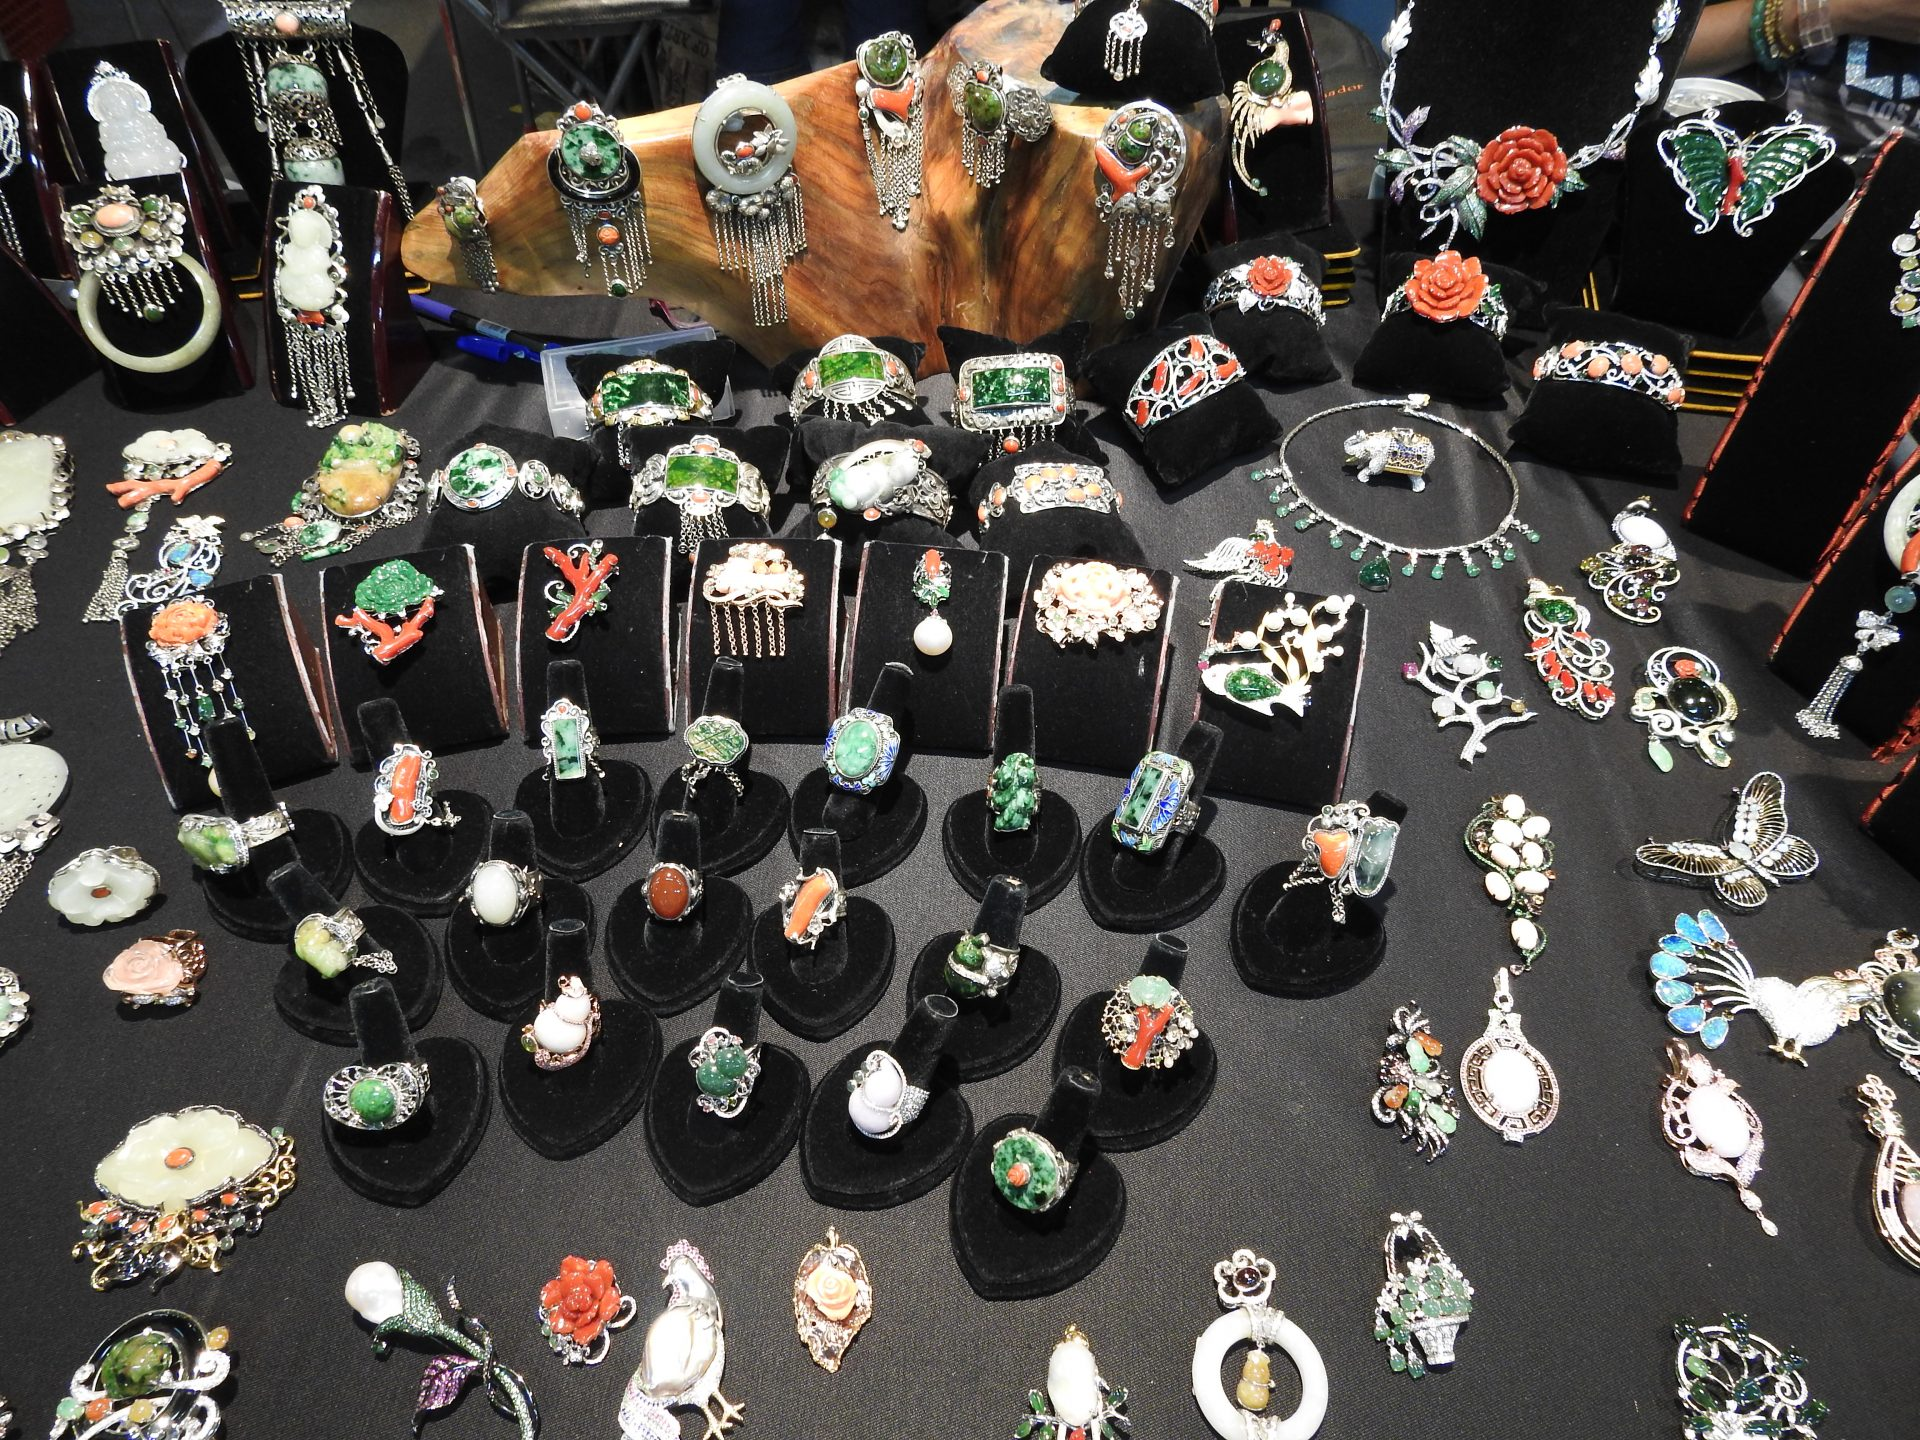 There are all kinds of jade rings consumers can choose from at the holiday jade bazaar in Taipei. (Image: Billy Shyu/ Vision Times)